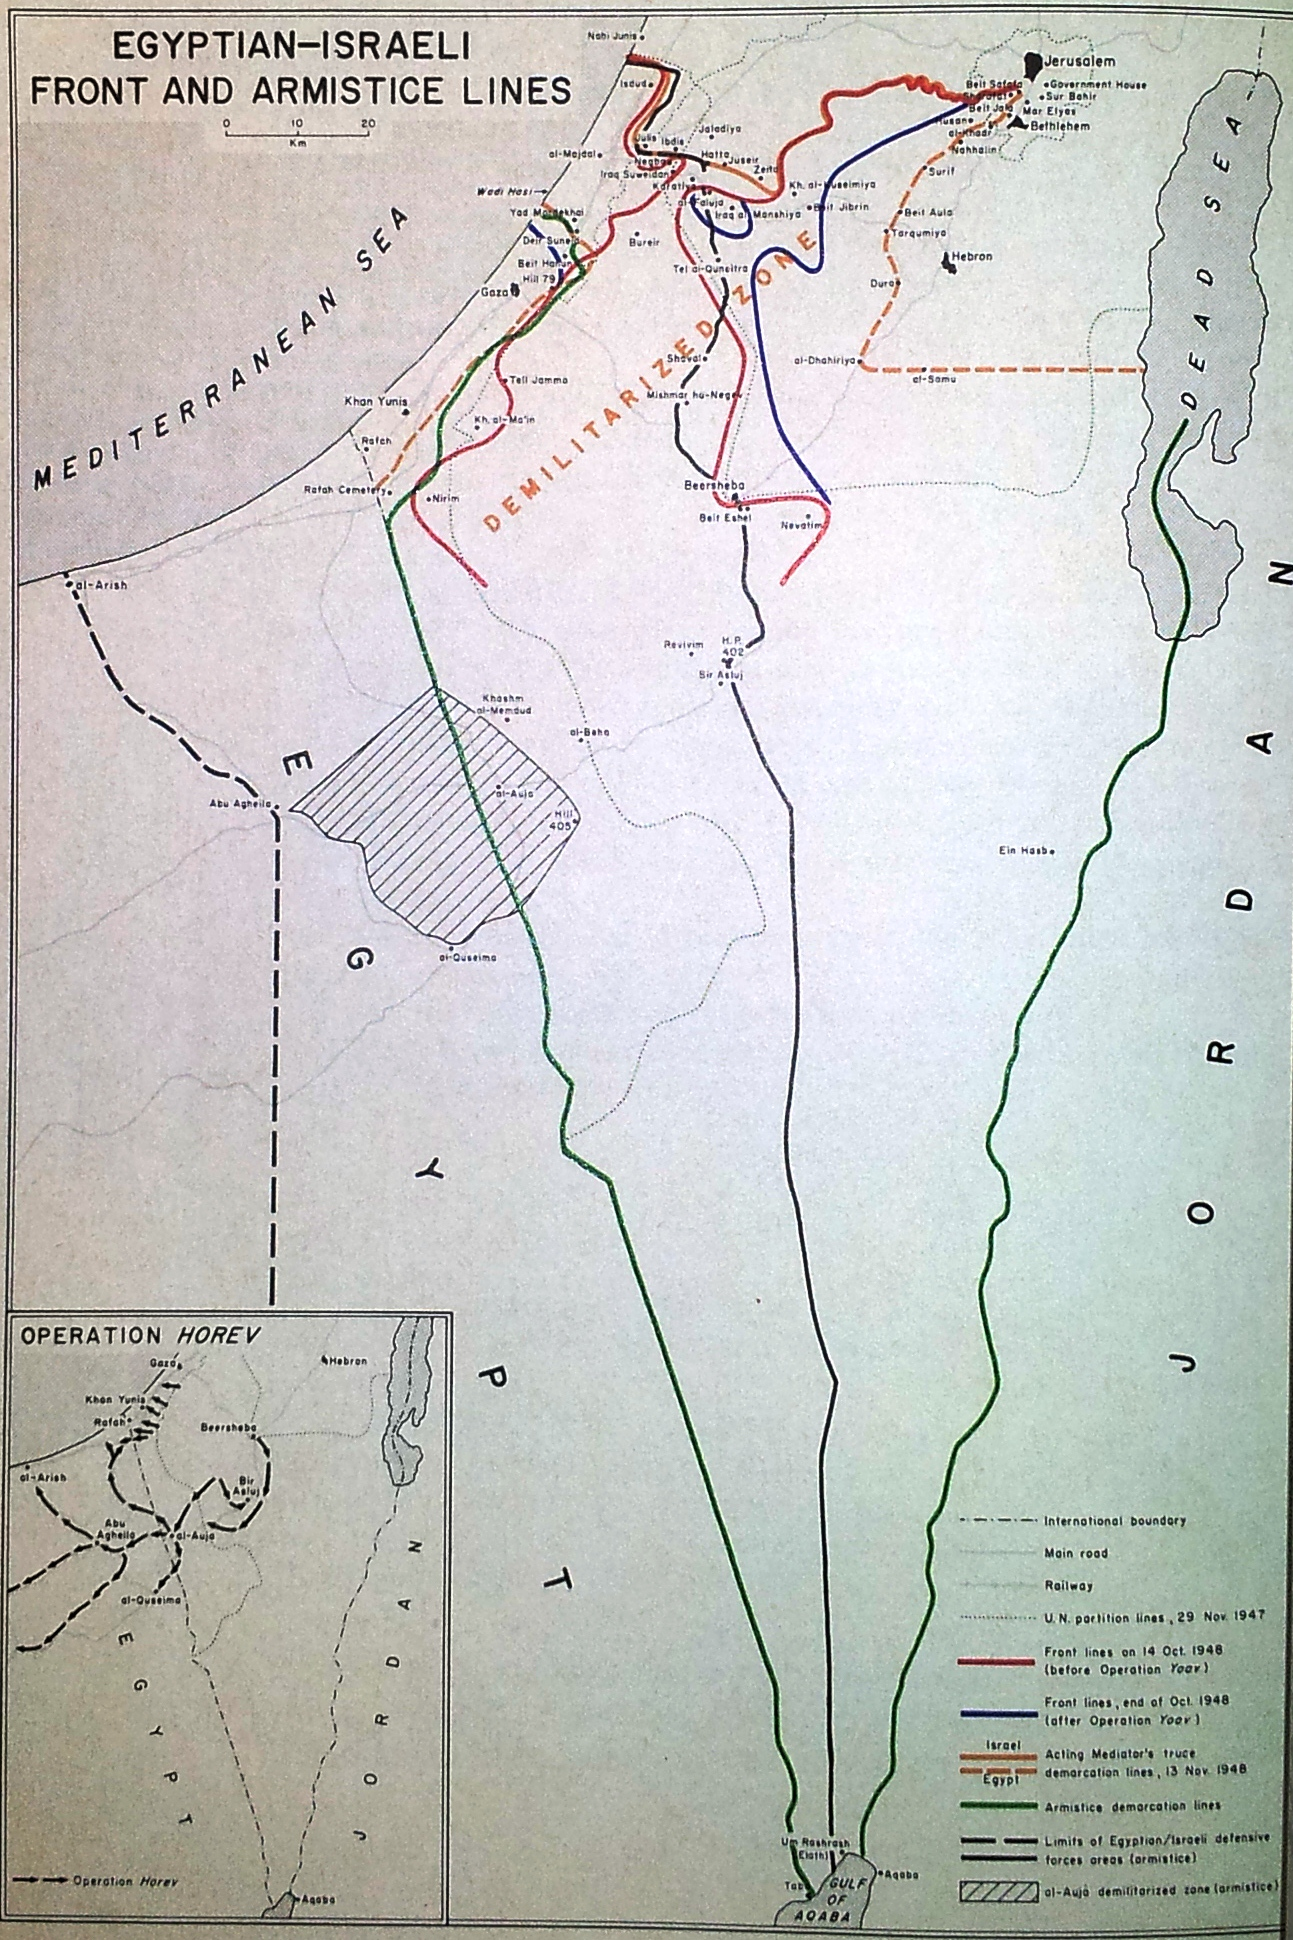 The Armistice Agreement between Egypt and Israel - Map - English (1949)